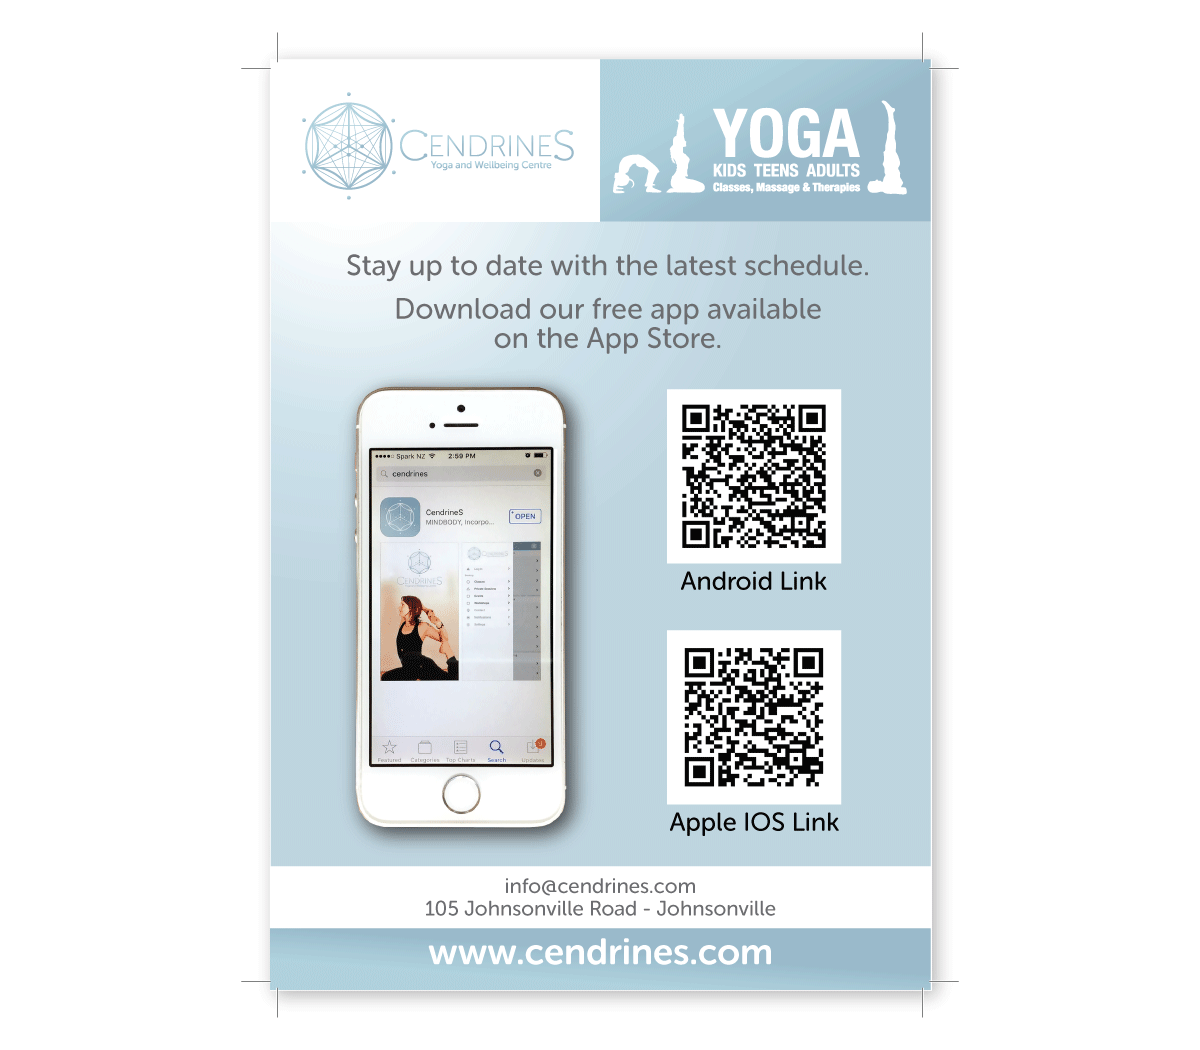 Yoga Studio Poster Design